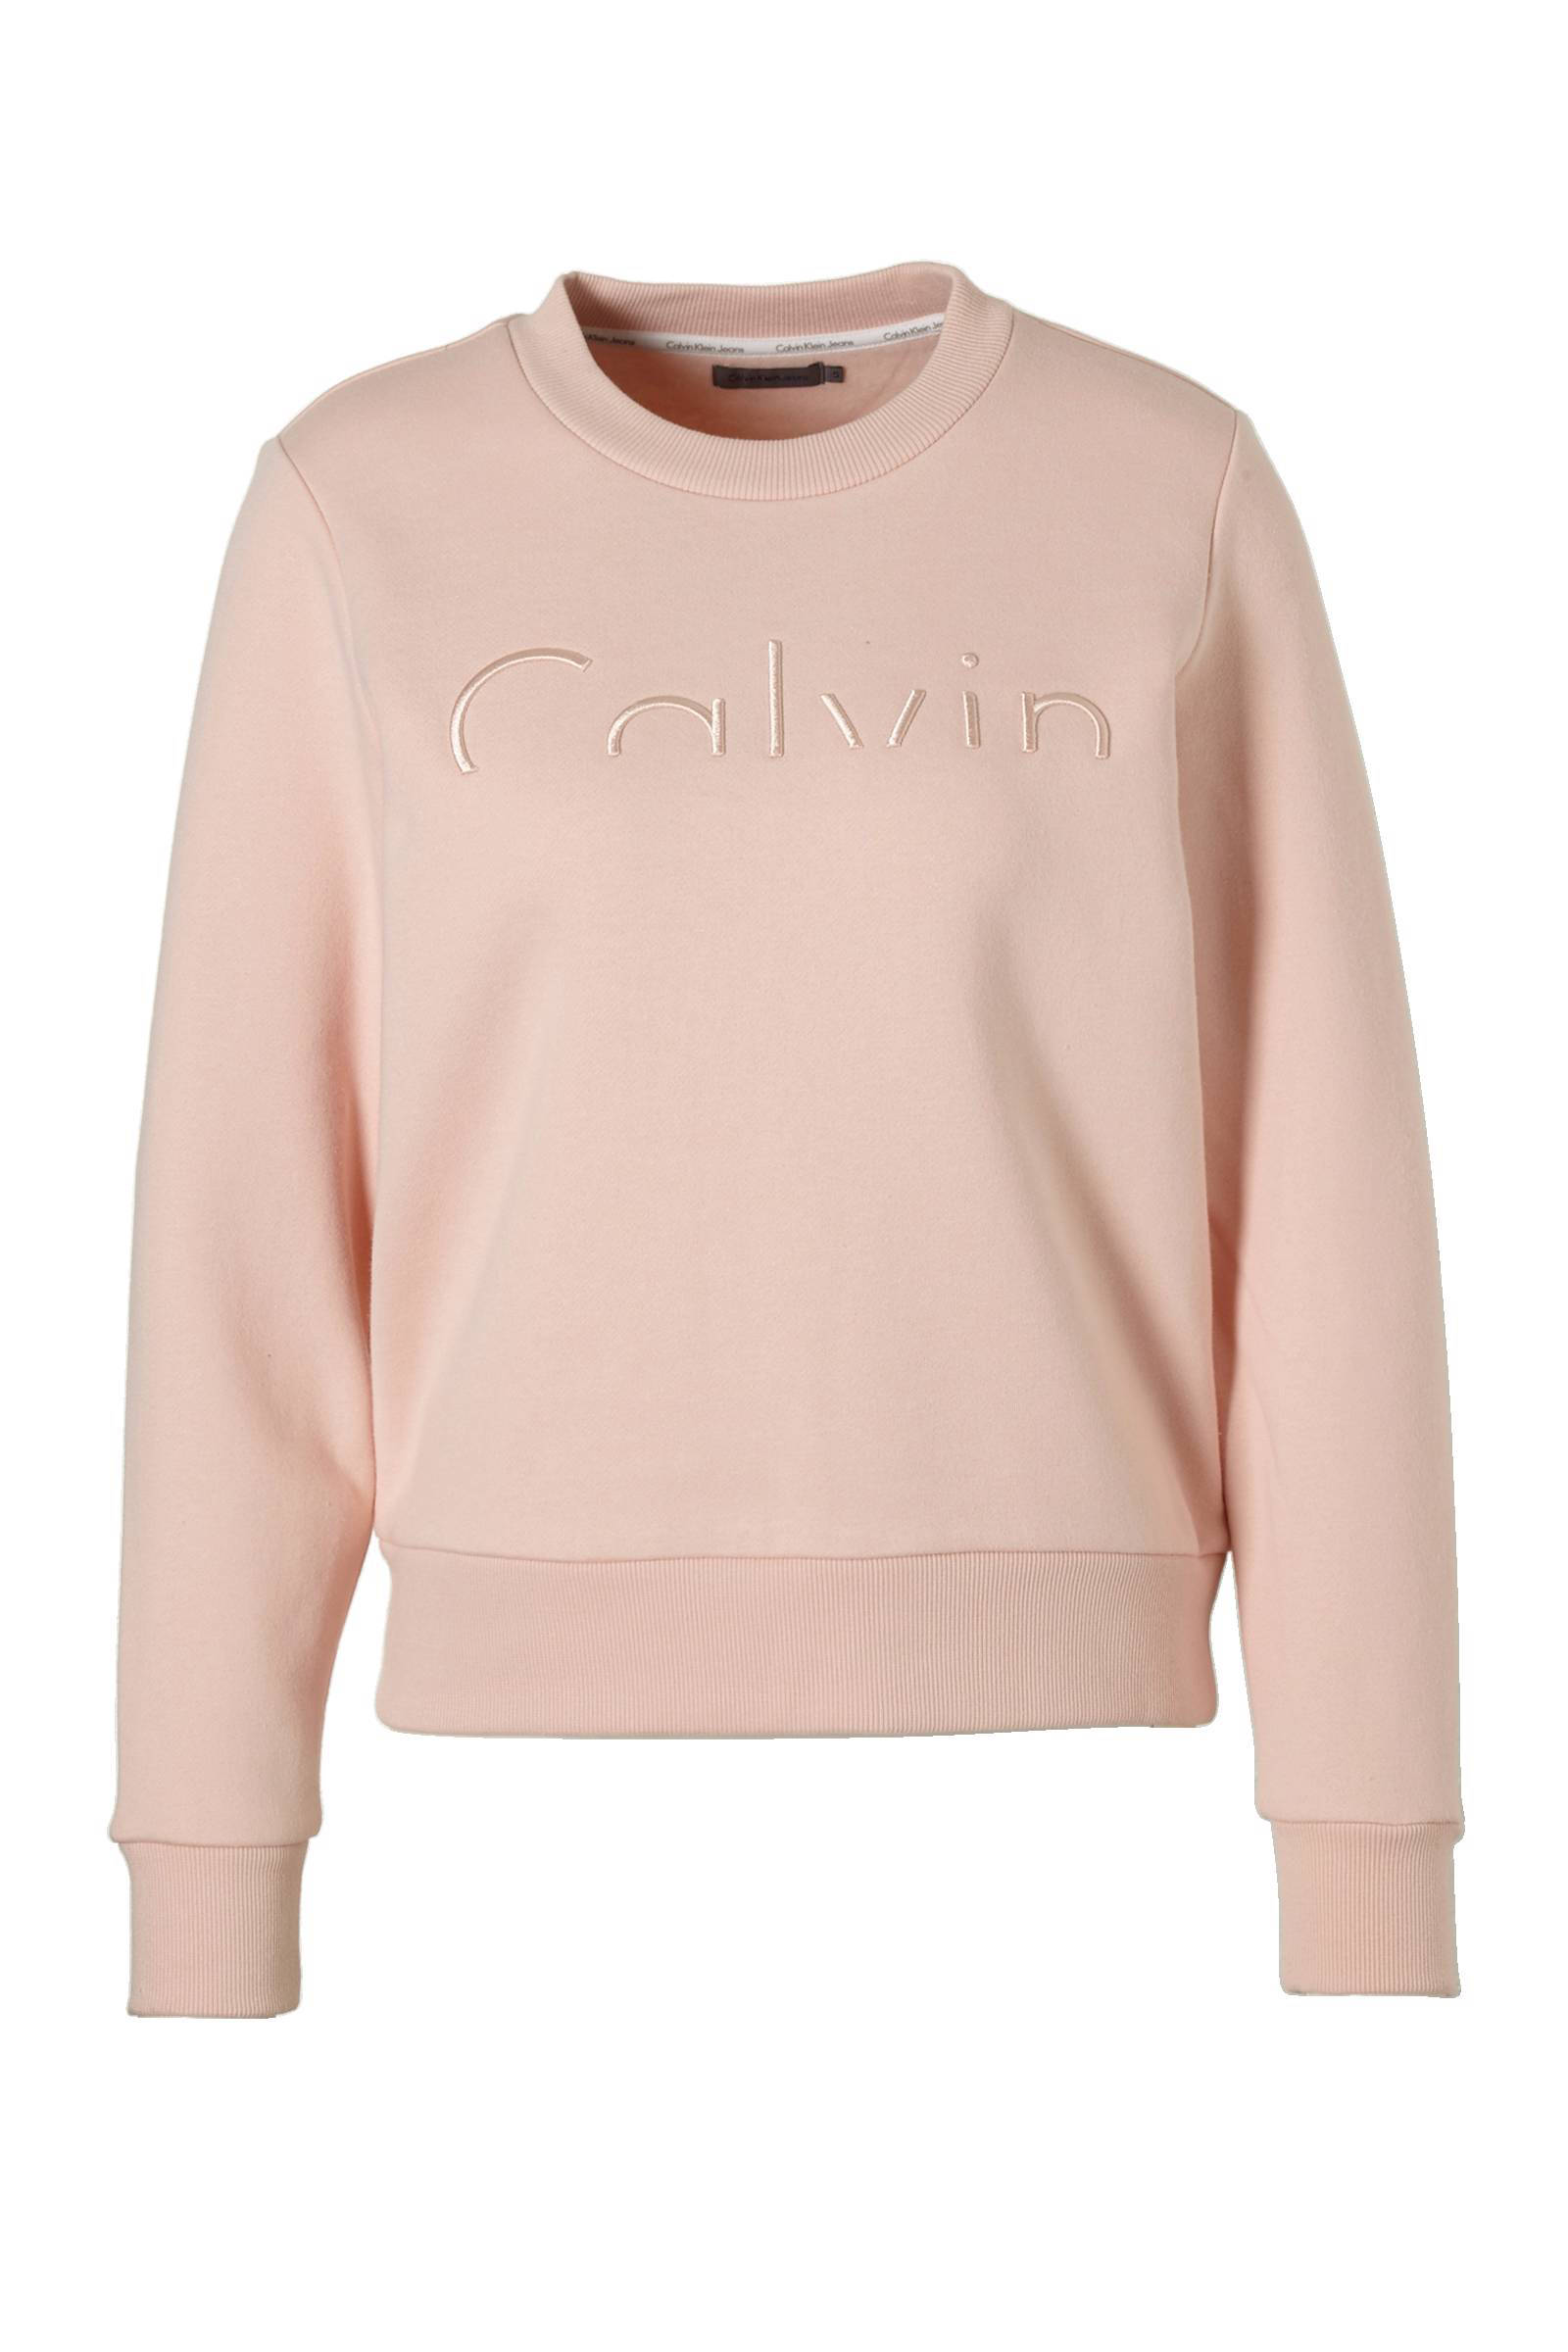 calvin klein sweater dames